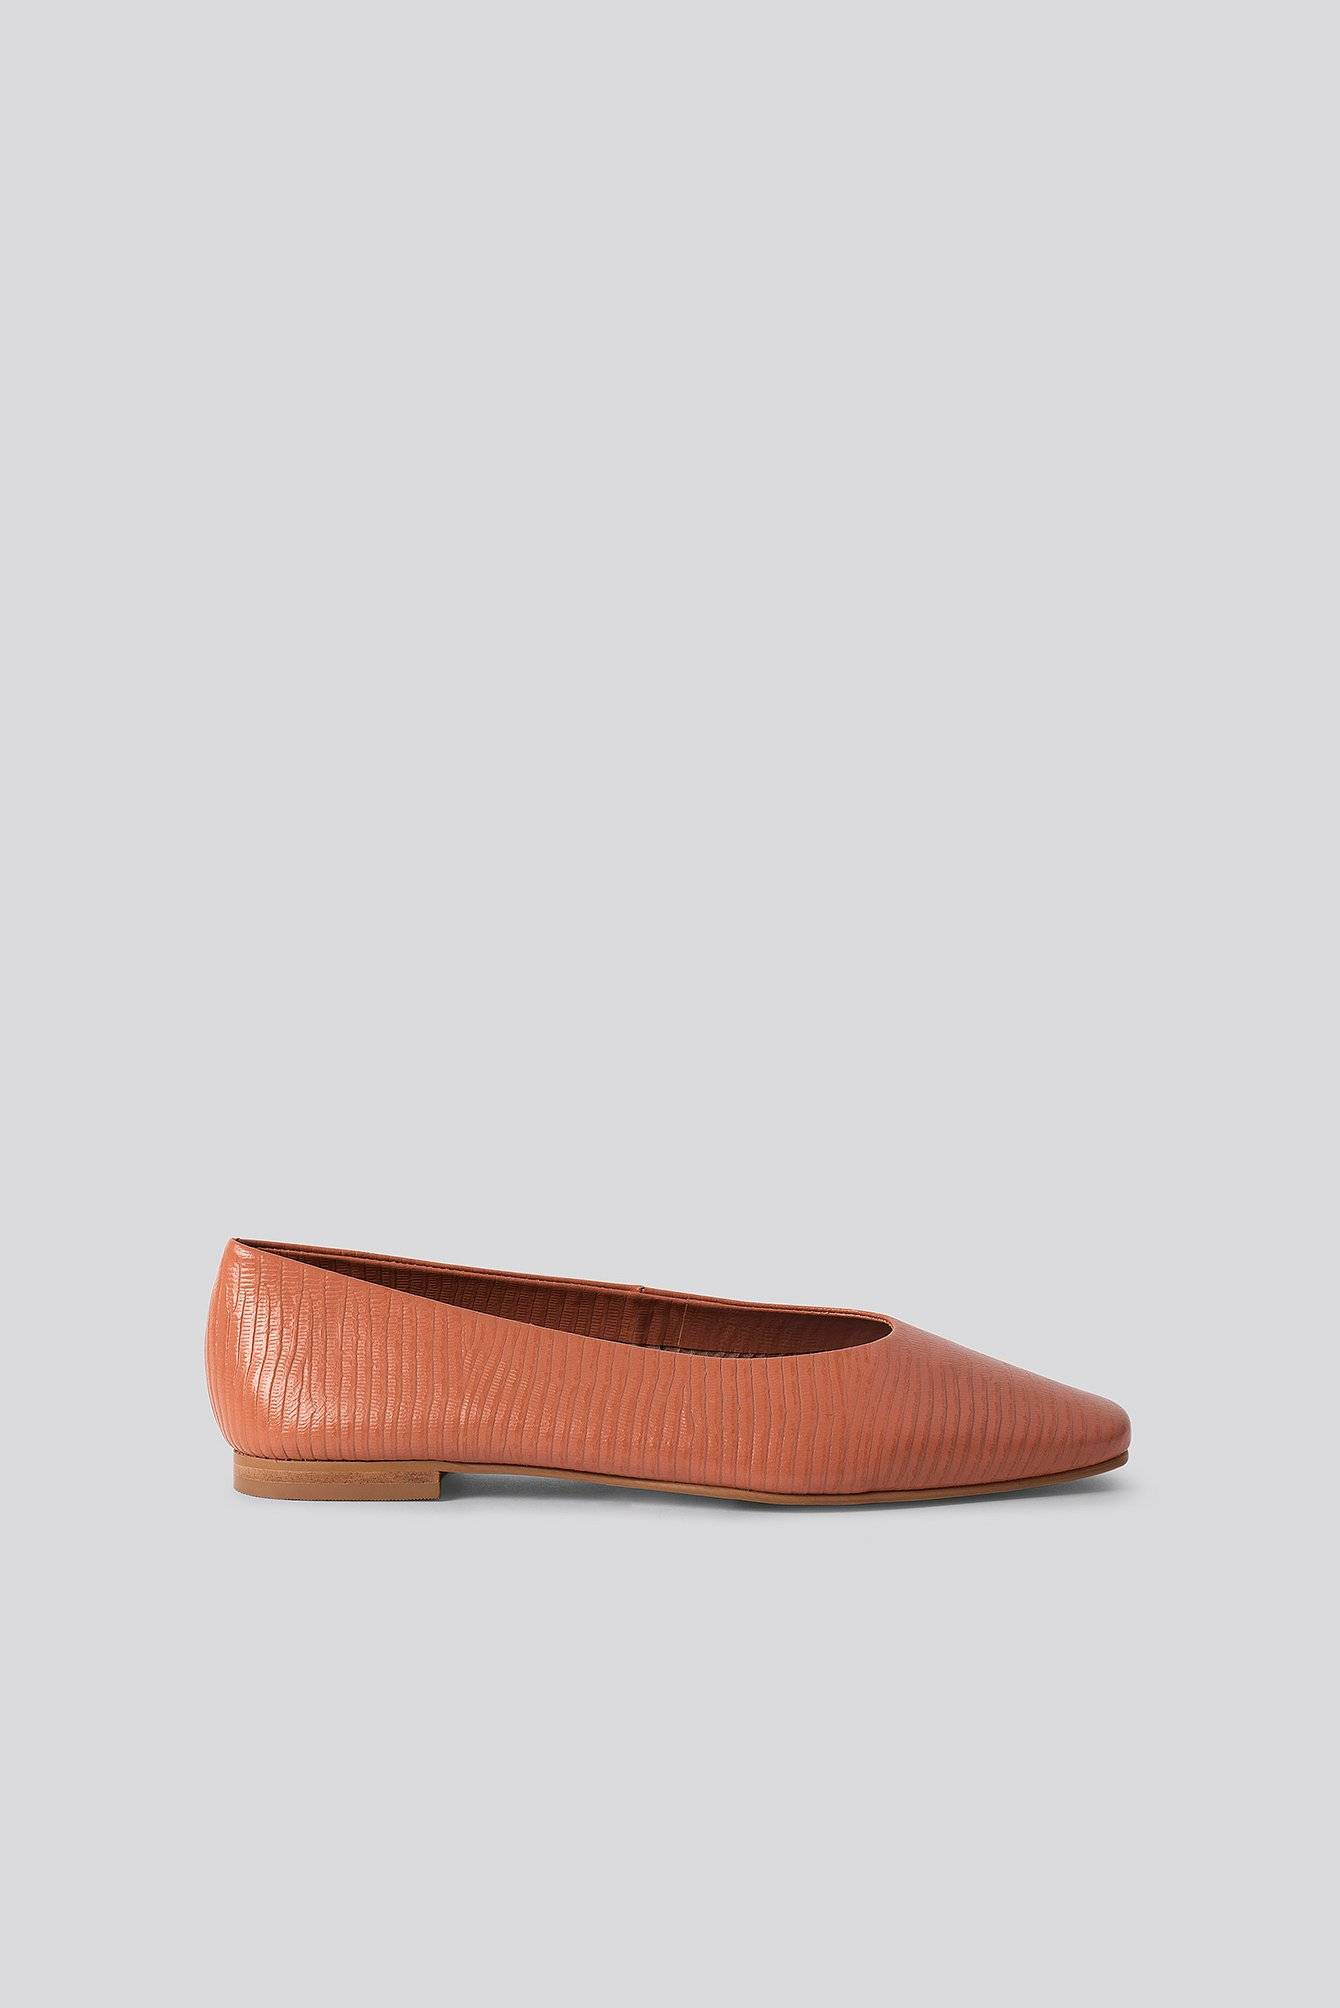 NA-KD Shoes Soft Leather Ballerinas - Brown